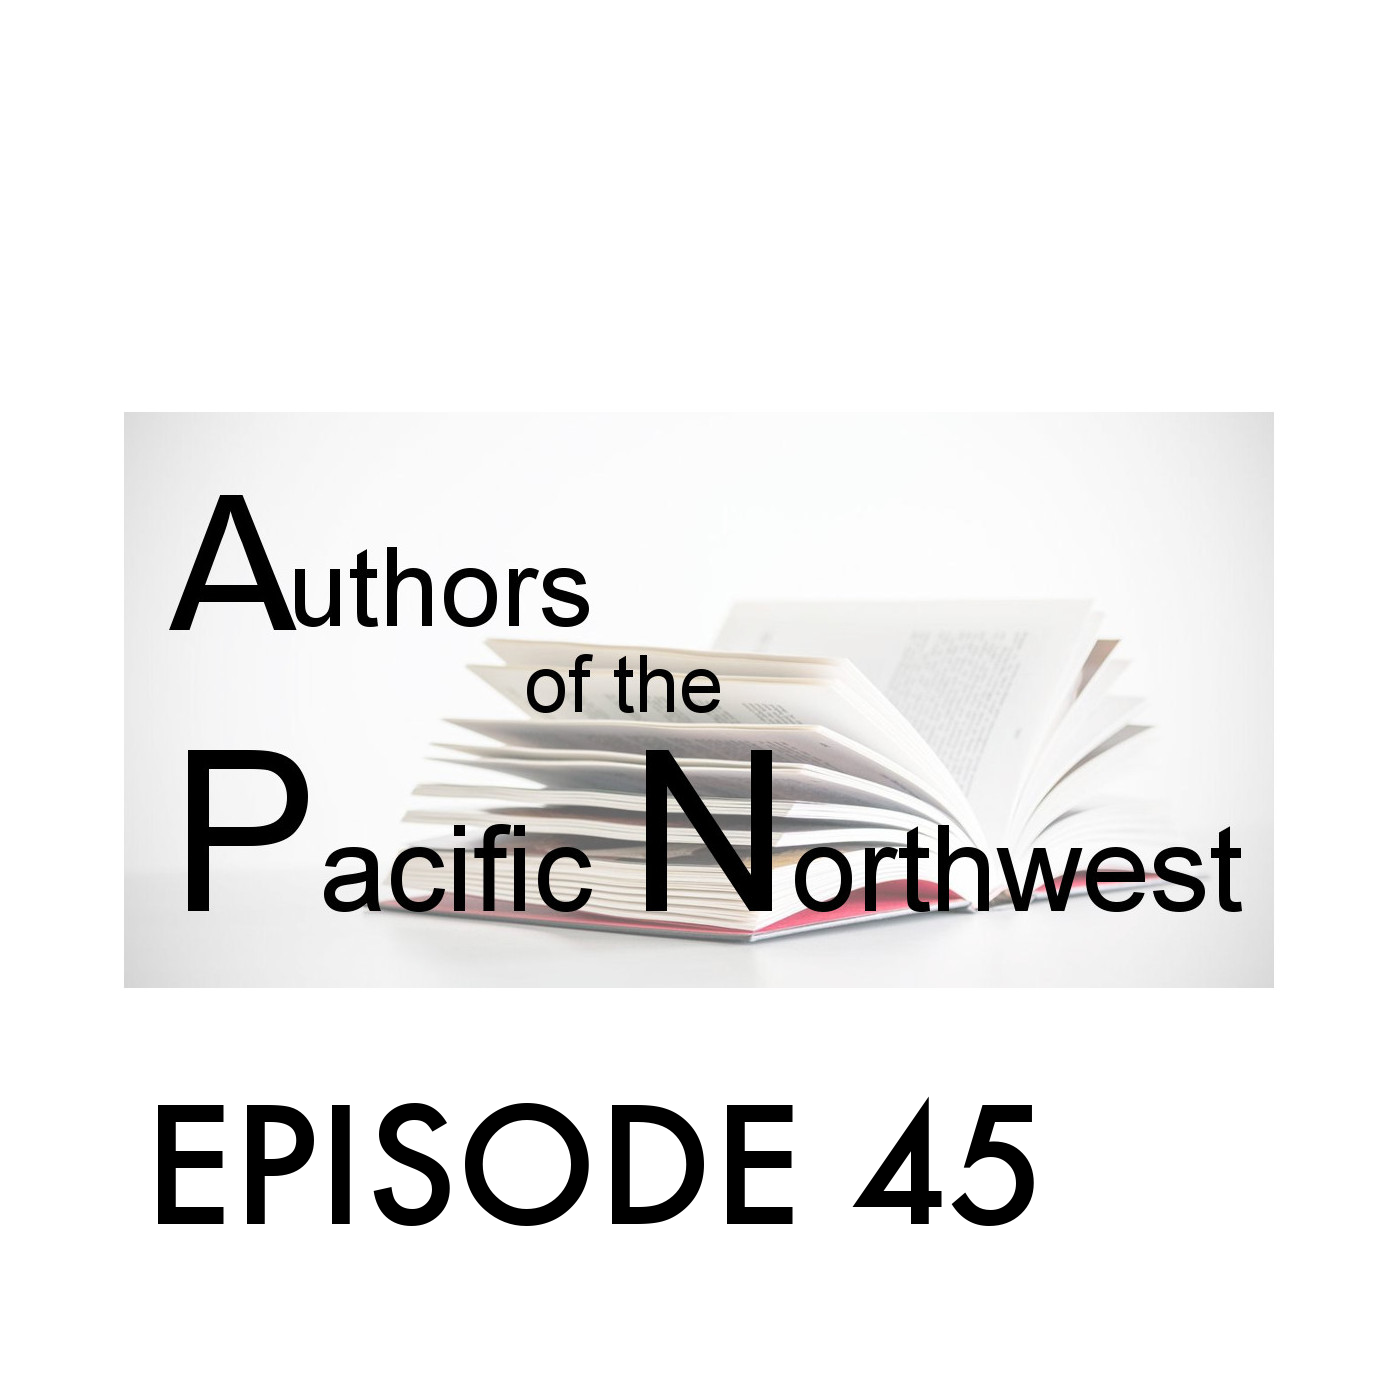 Episode 45: Frank Zafiro; Crime Fiction Author & Podcast Producer of Wrong Place, Write Crime